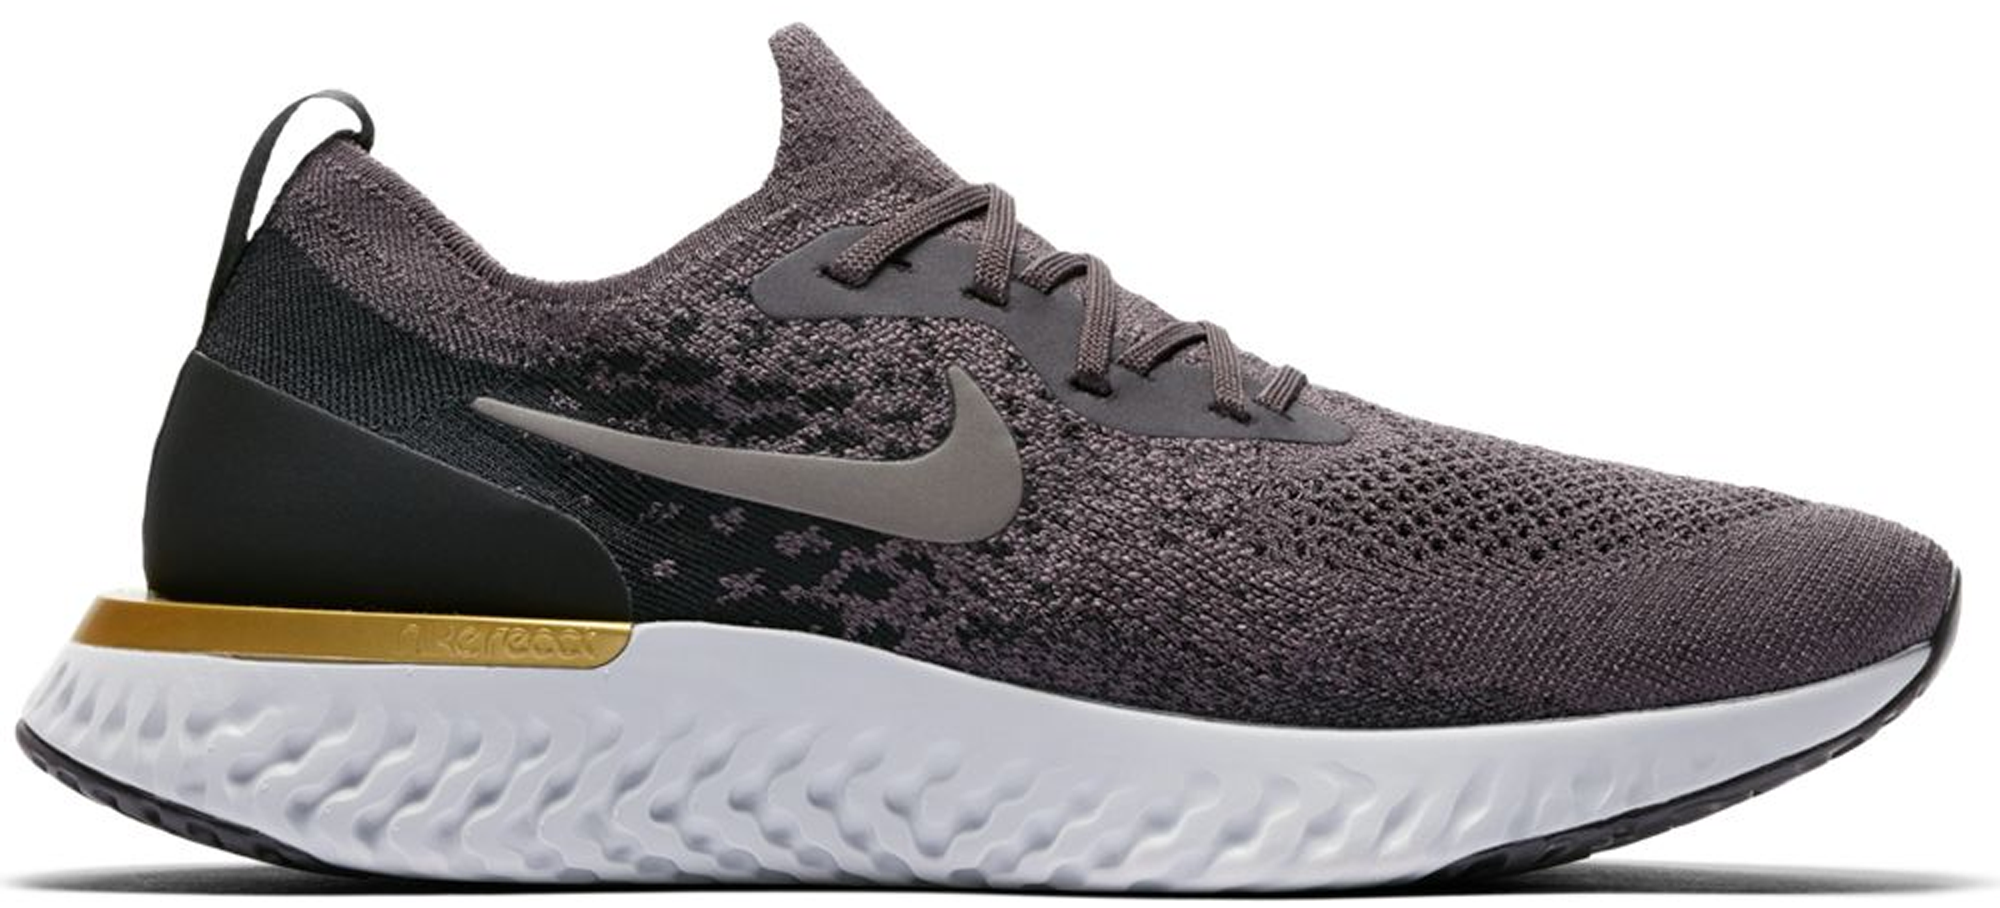 Pre-owned Nike Epic React Flyknit Deep